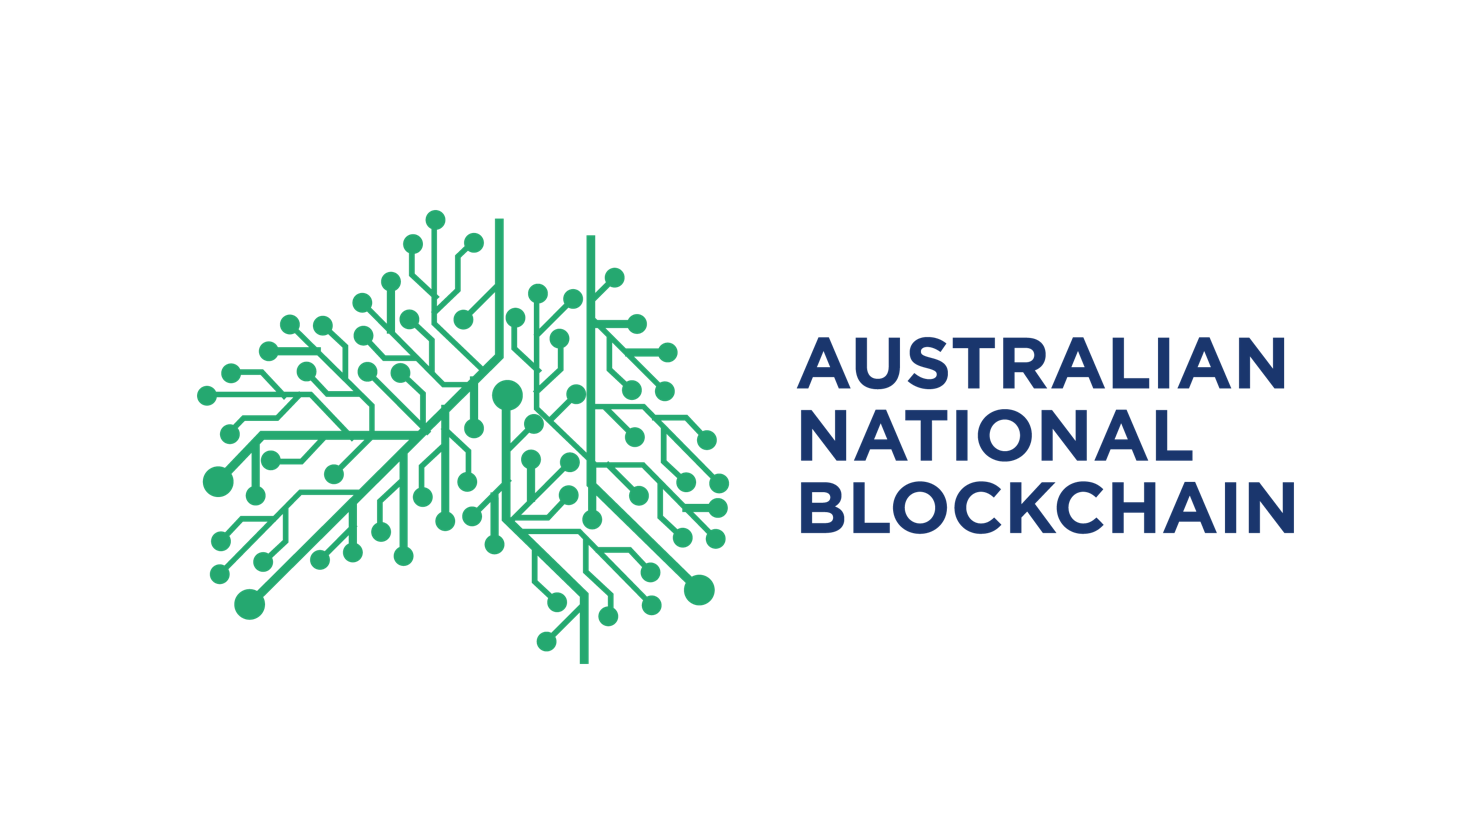 Australian National Blockchain (ANB)